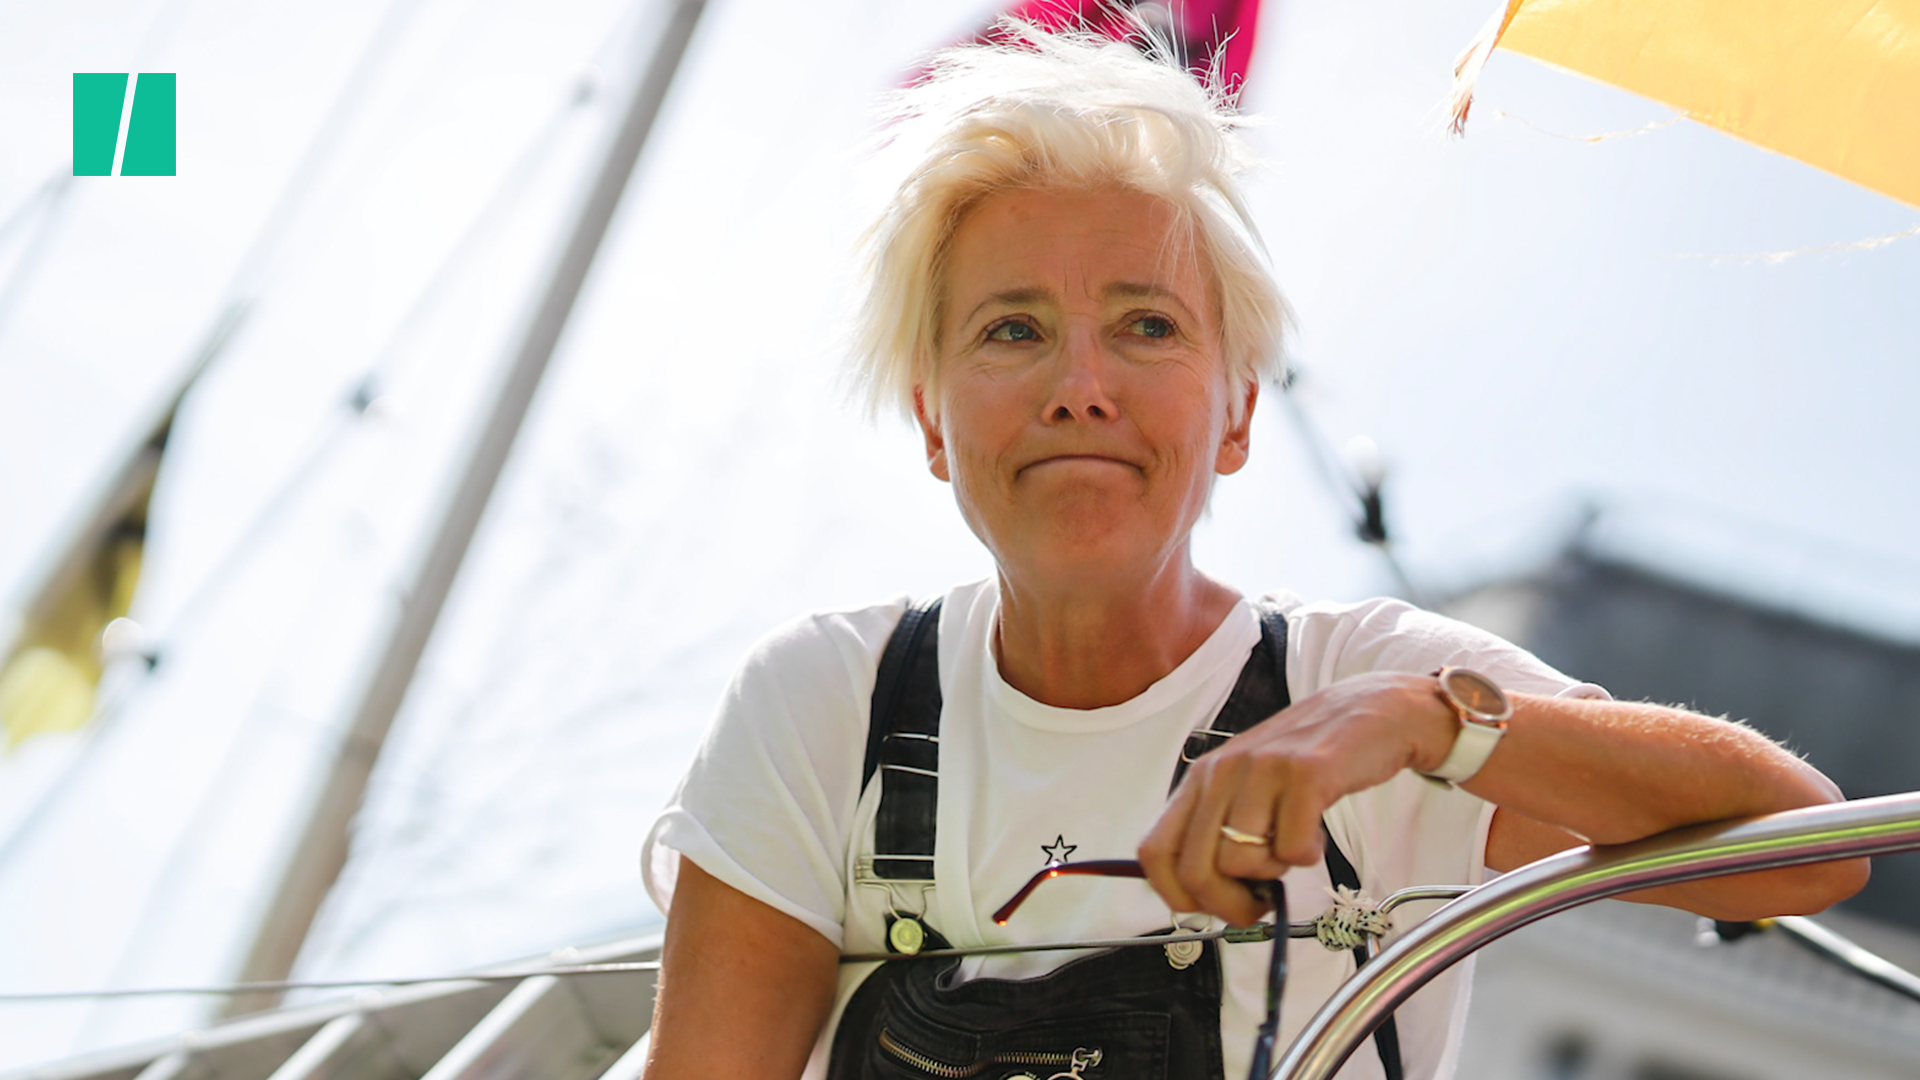 Emma Thompson Joins Extinction Rebellion In Climate Change Protest